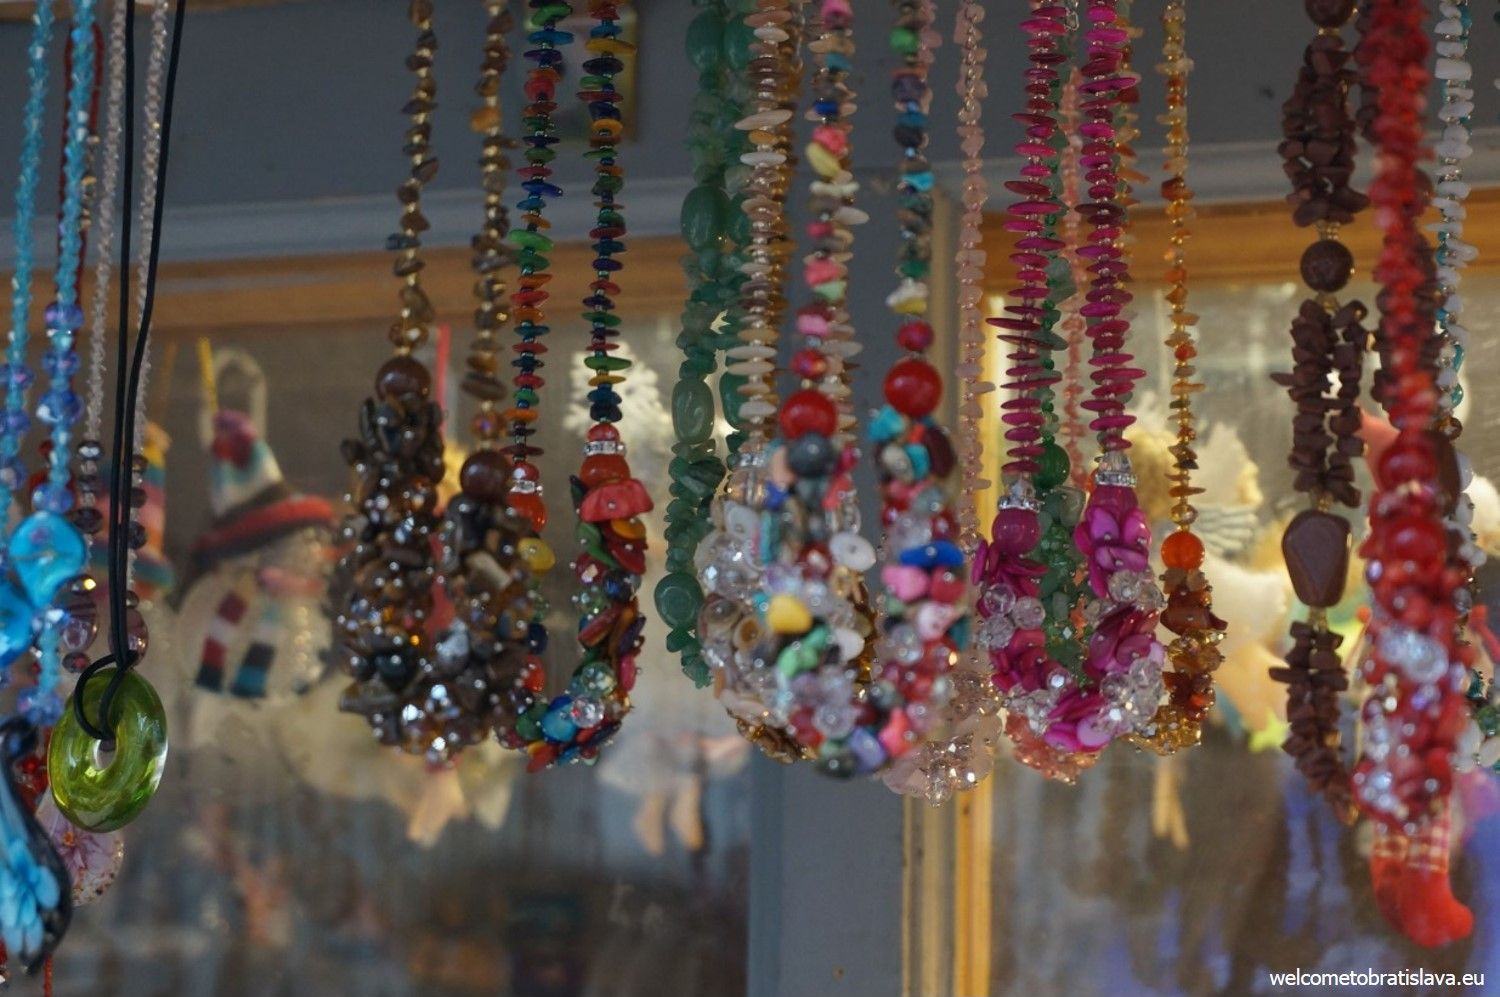 You can buy various jeweleries at the markets as well